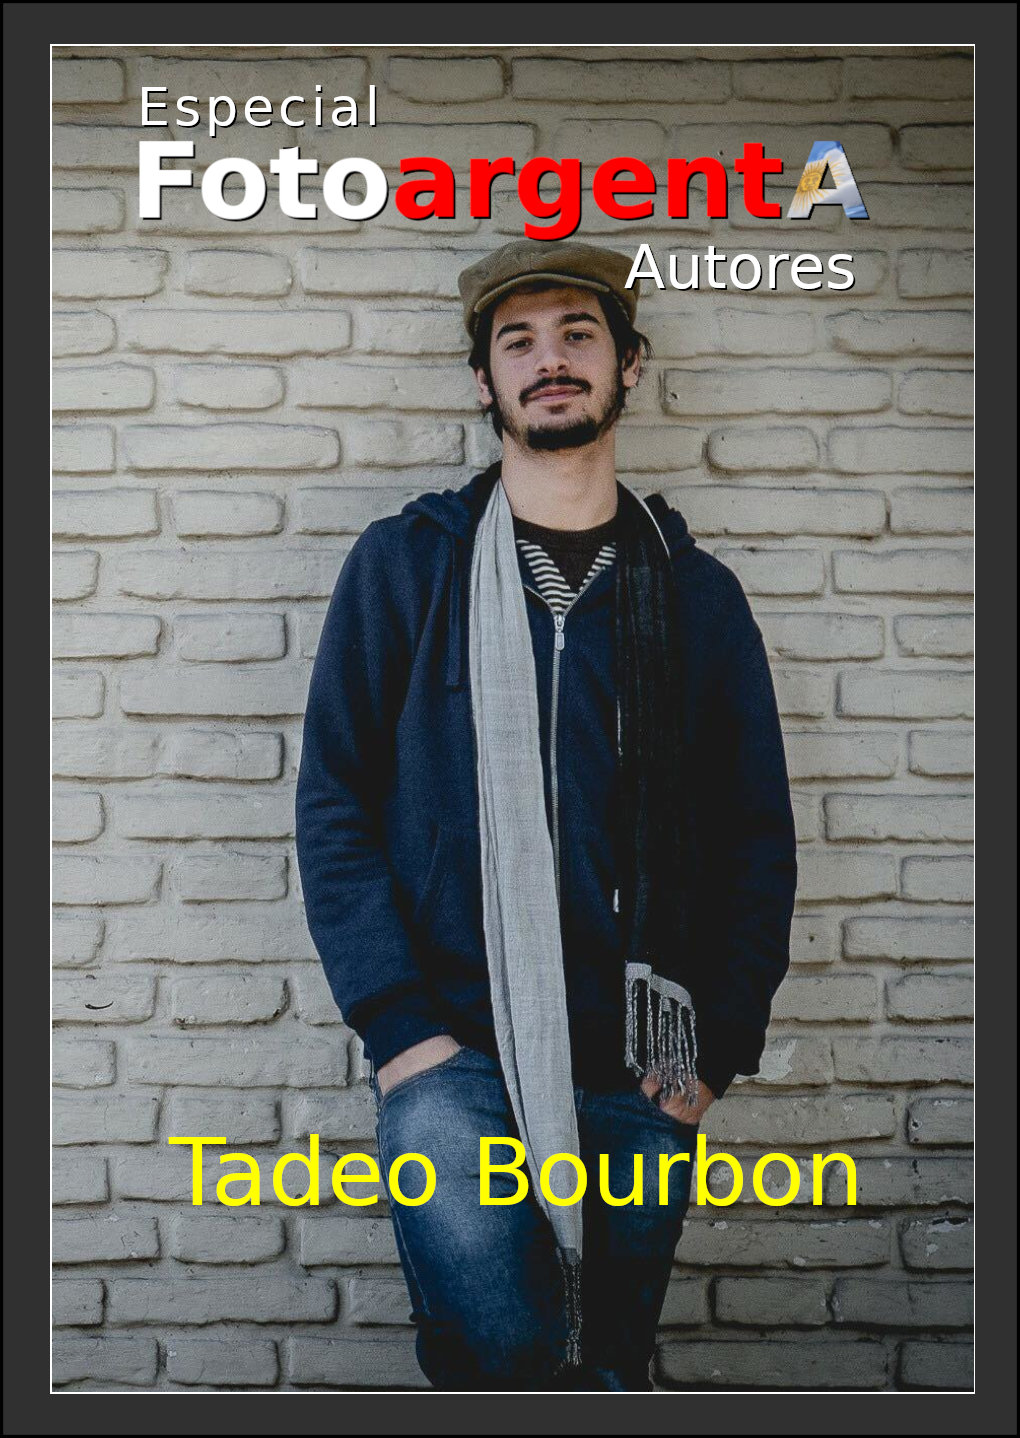 Tapa Revista de Tadeo Bourbon